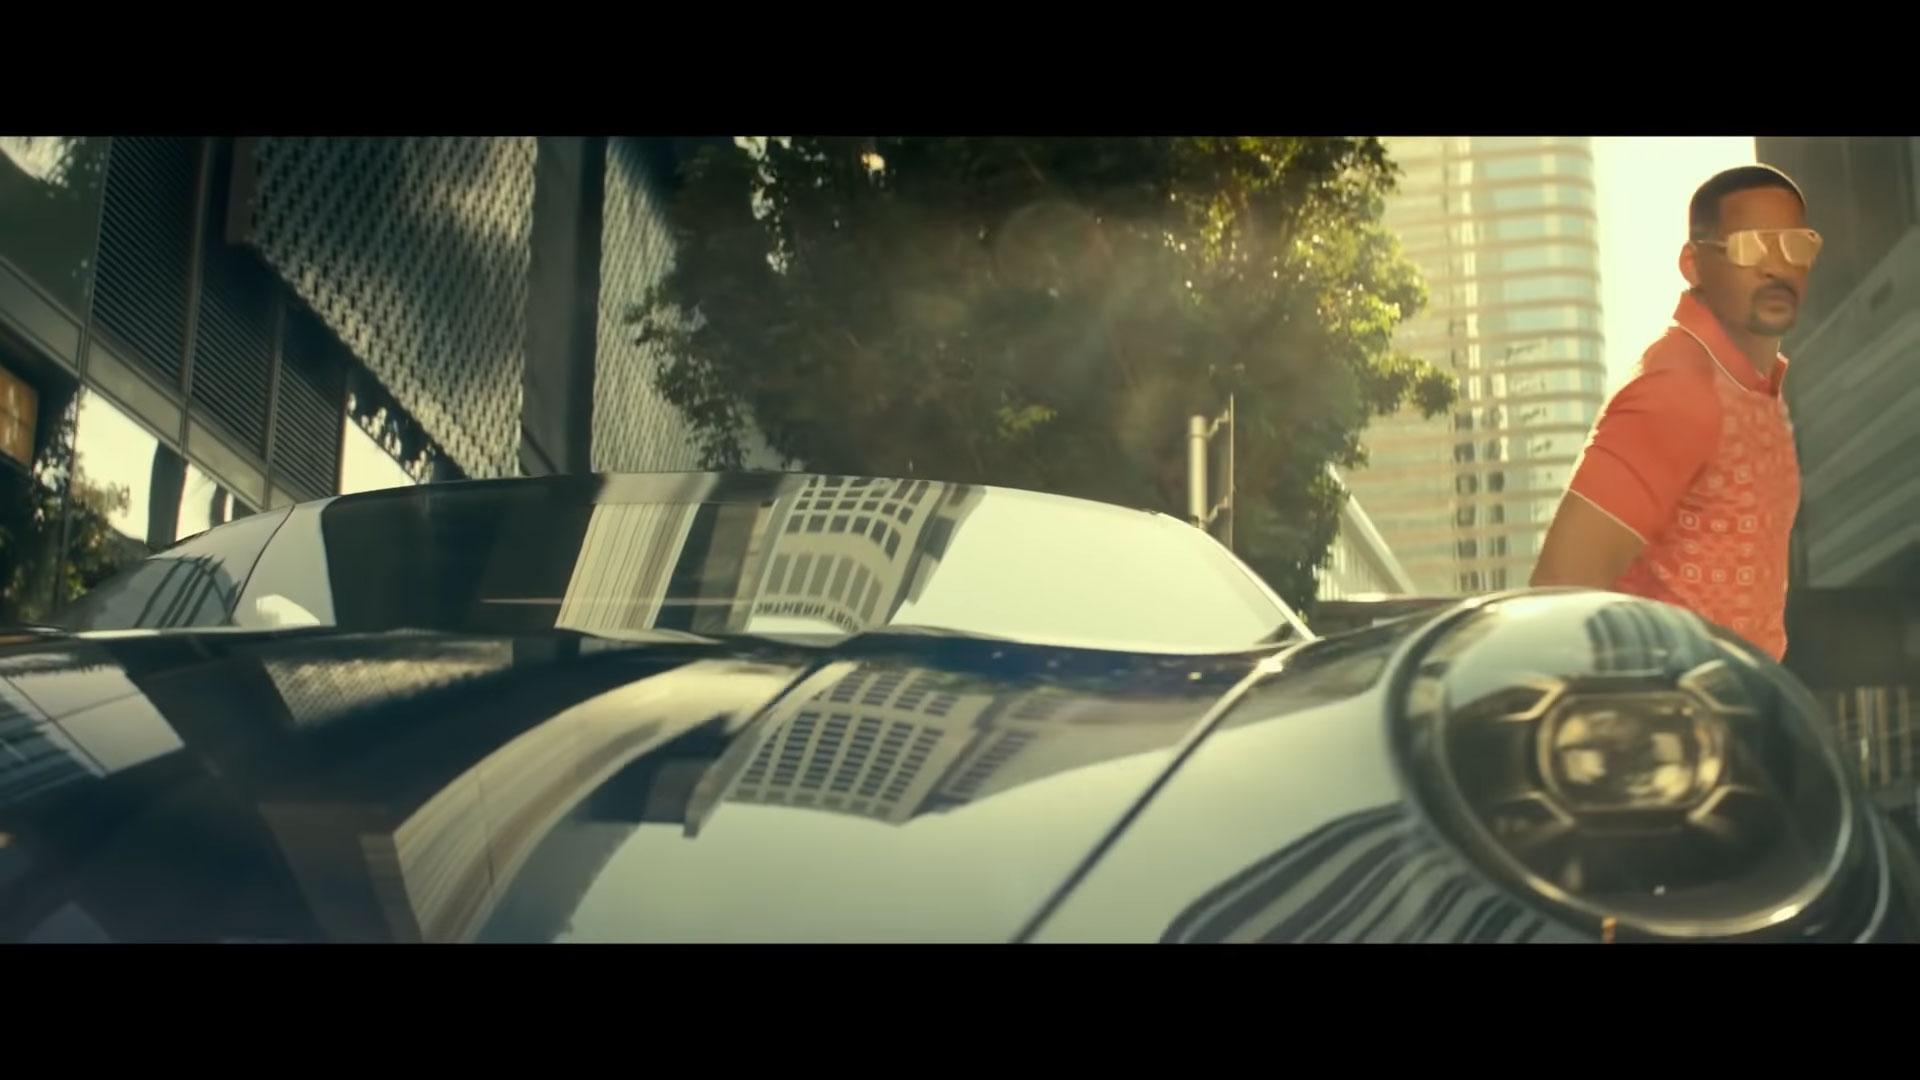 Porsche 911 in Bad Boys for Life met Will Smith and Martin Lawrence